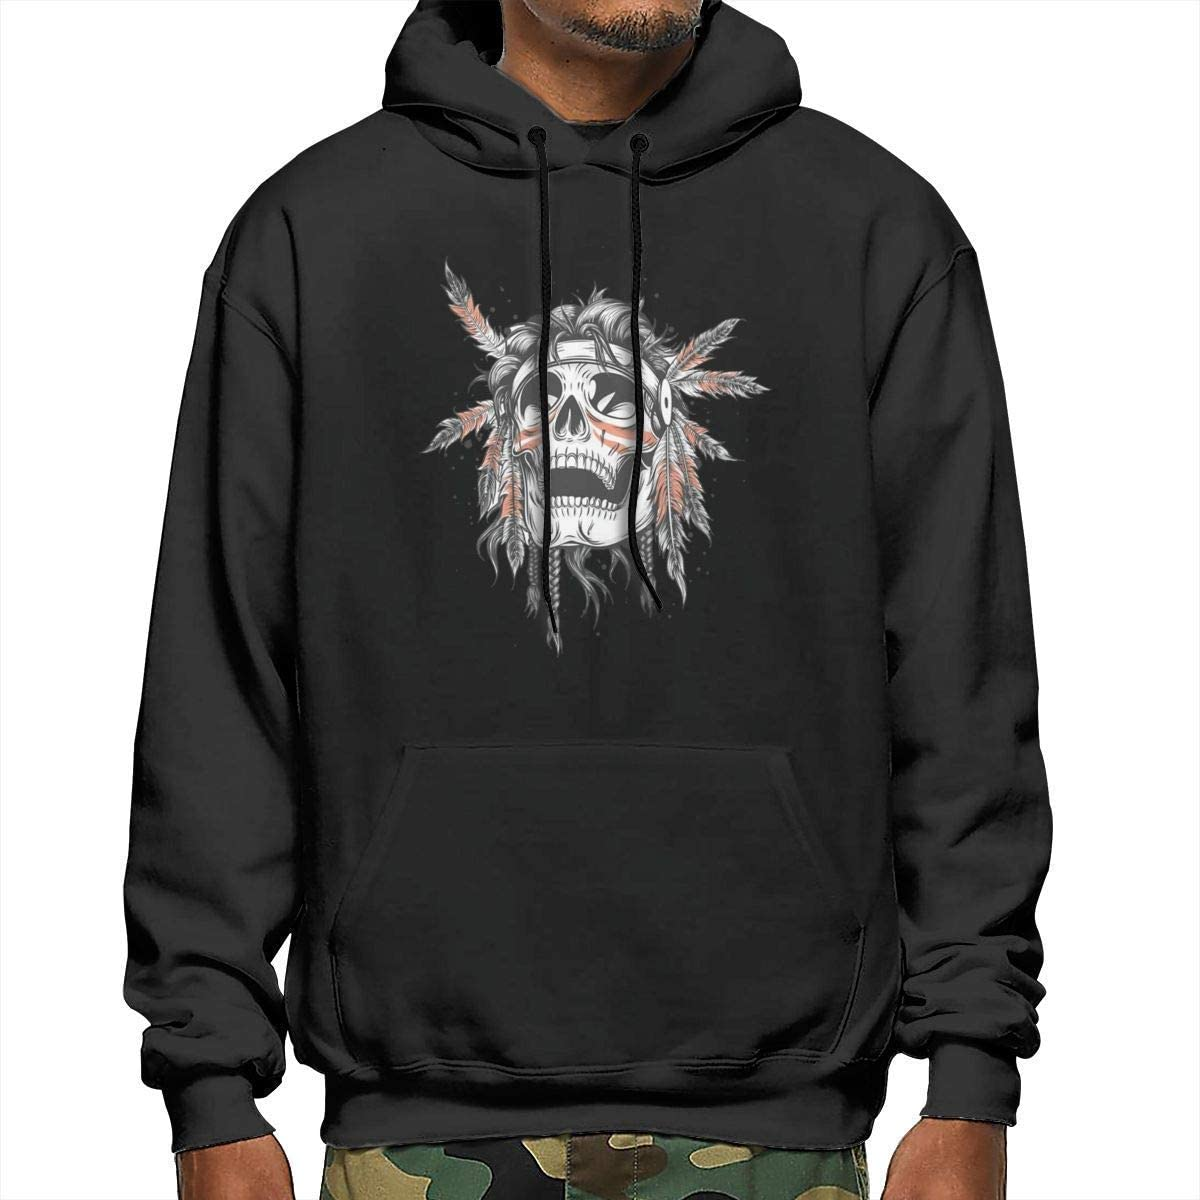 YCR4FC Indian Chief Skull Illustration Mens Winter Comfortable Polyester Long Sleeve Hooded Sweatshirt Sweater Black